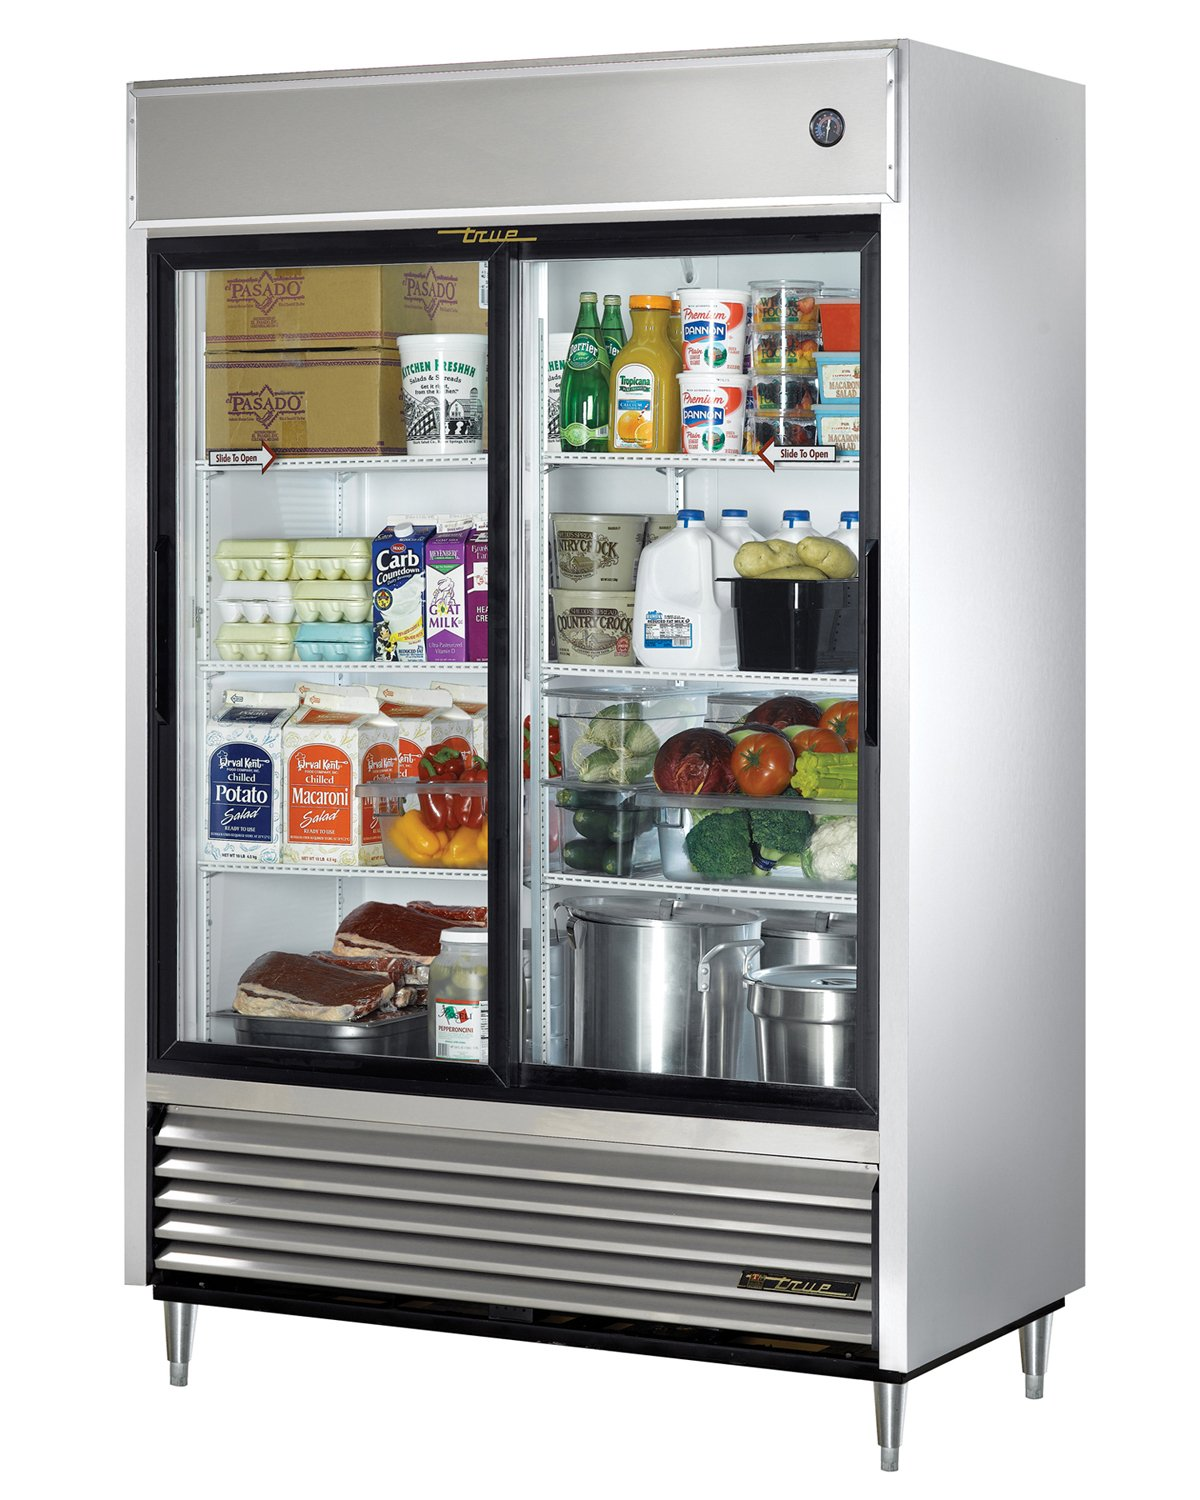 Design Fridge With Glass Door amazon com true tsd 47g ld 2 door sliding glass refrigerator industrial scientific